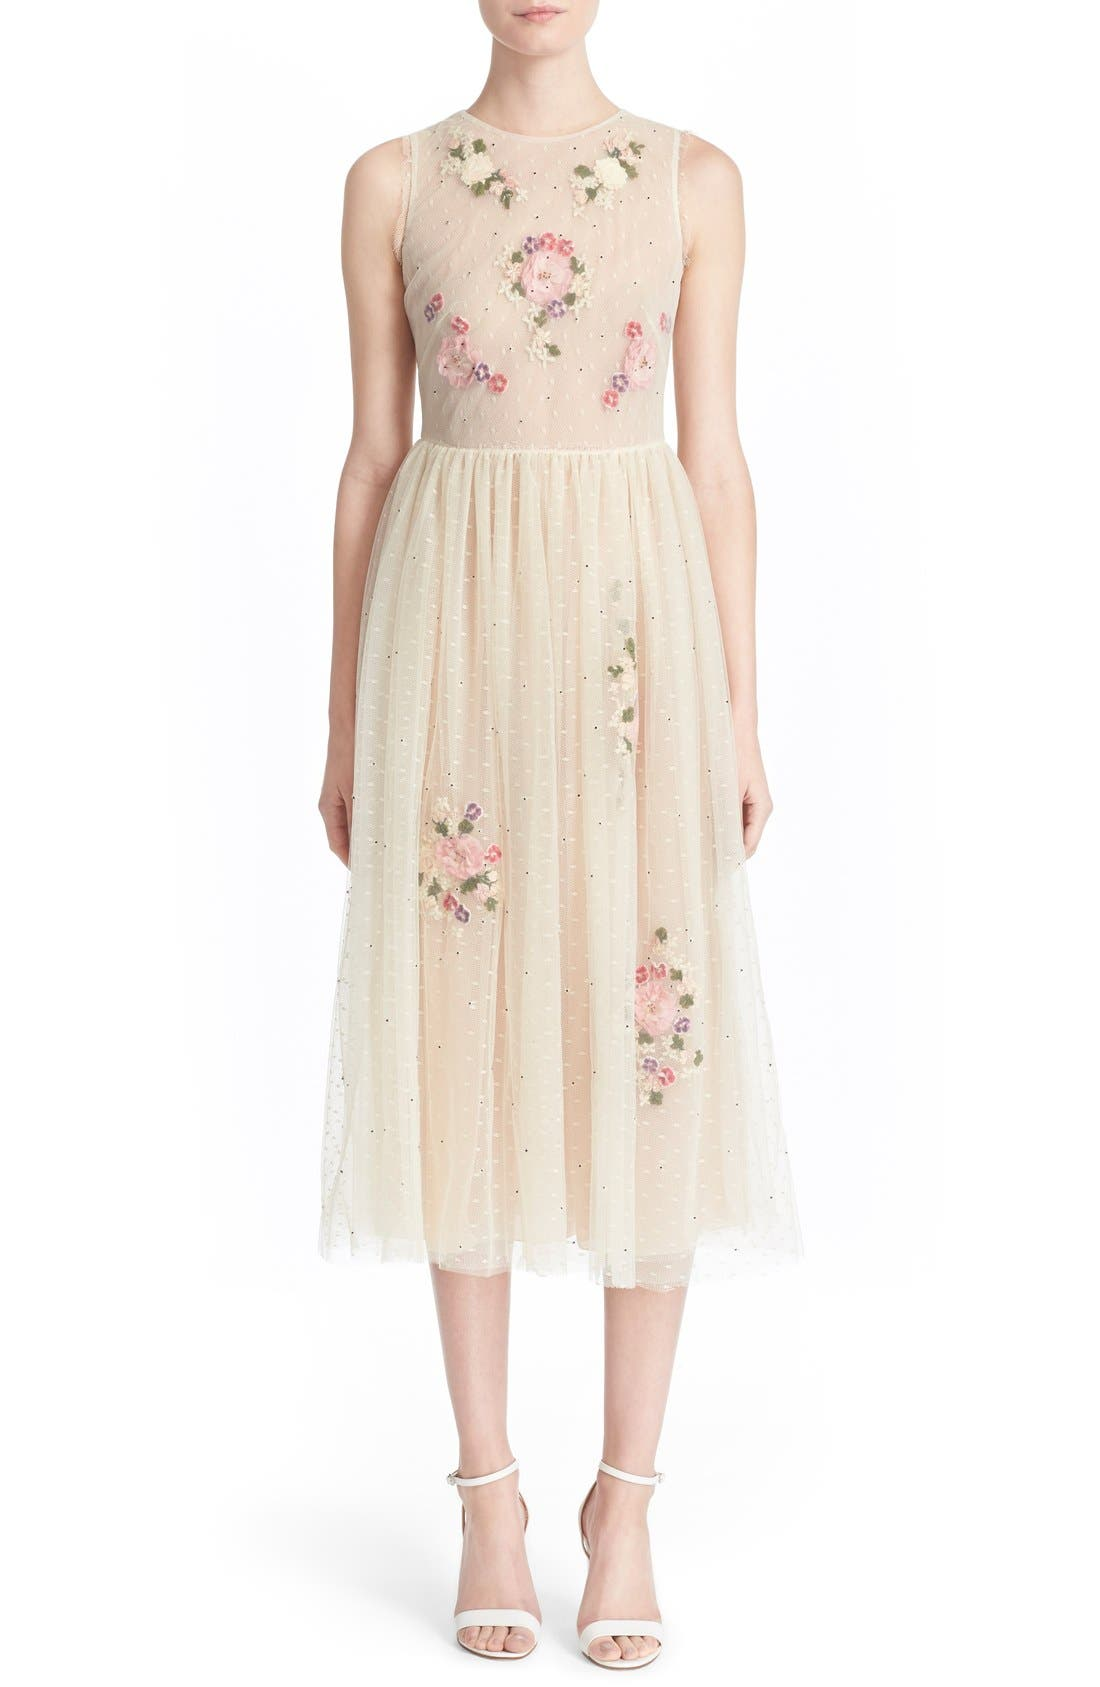 Alternate Image 1 Selected - RED Valentino Floral Appliqué Sleeveless Dress